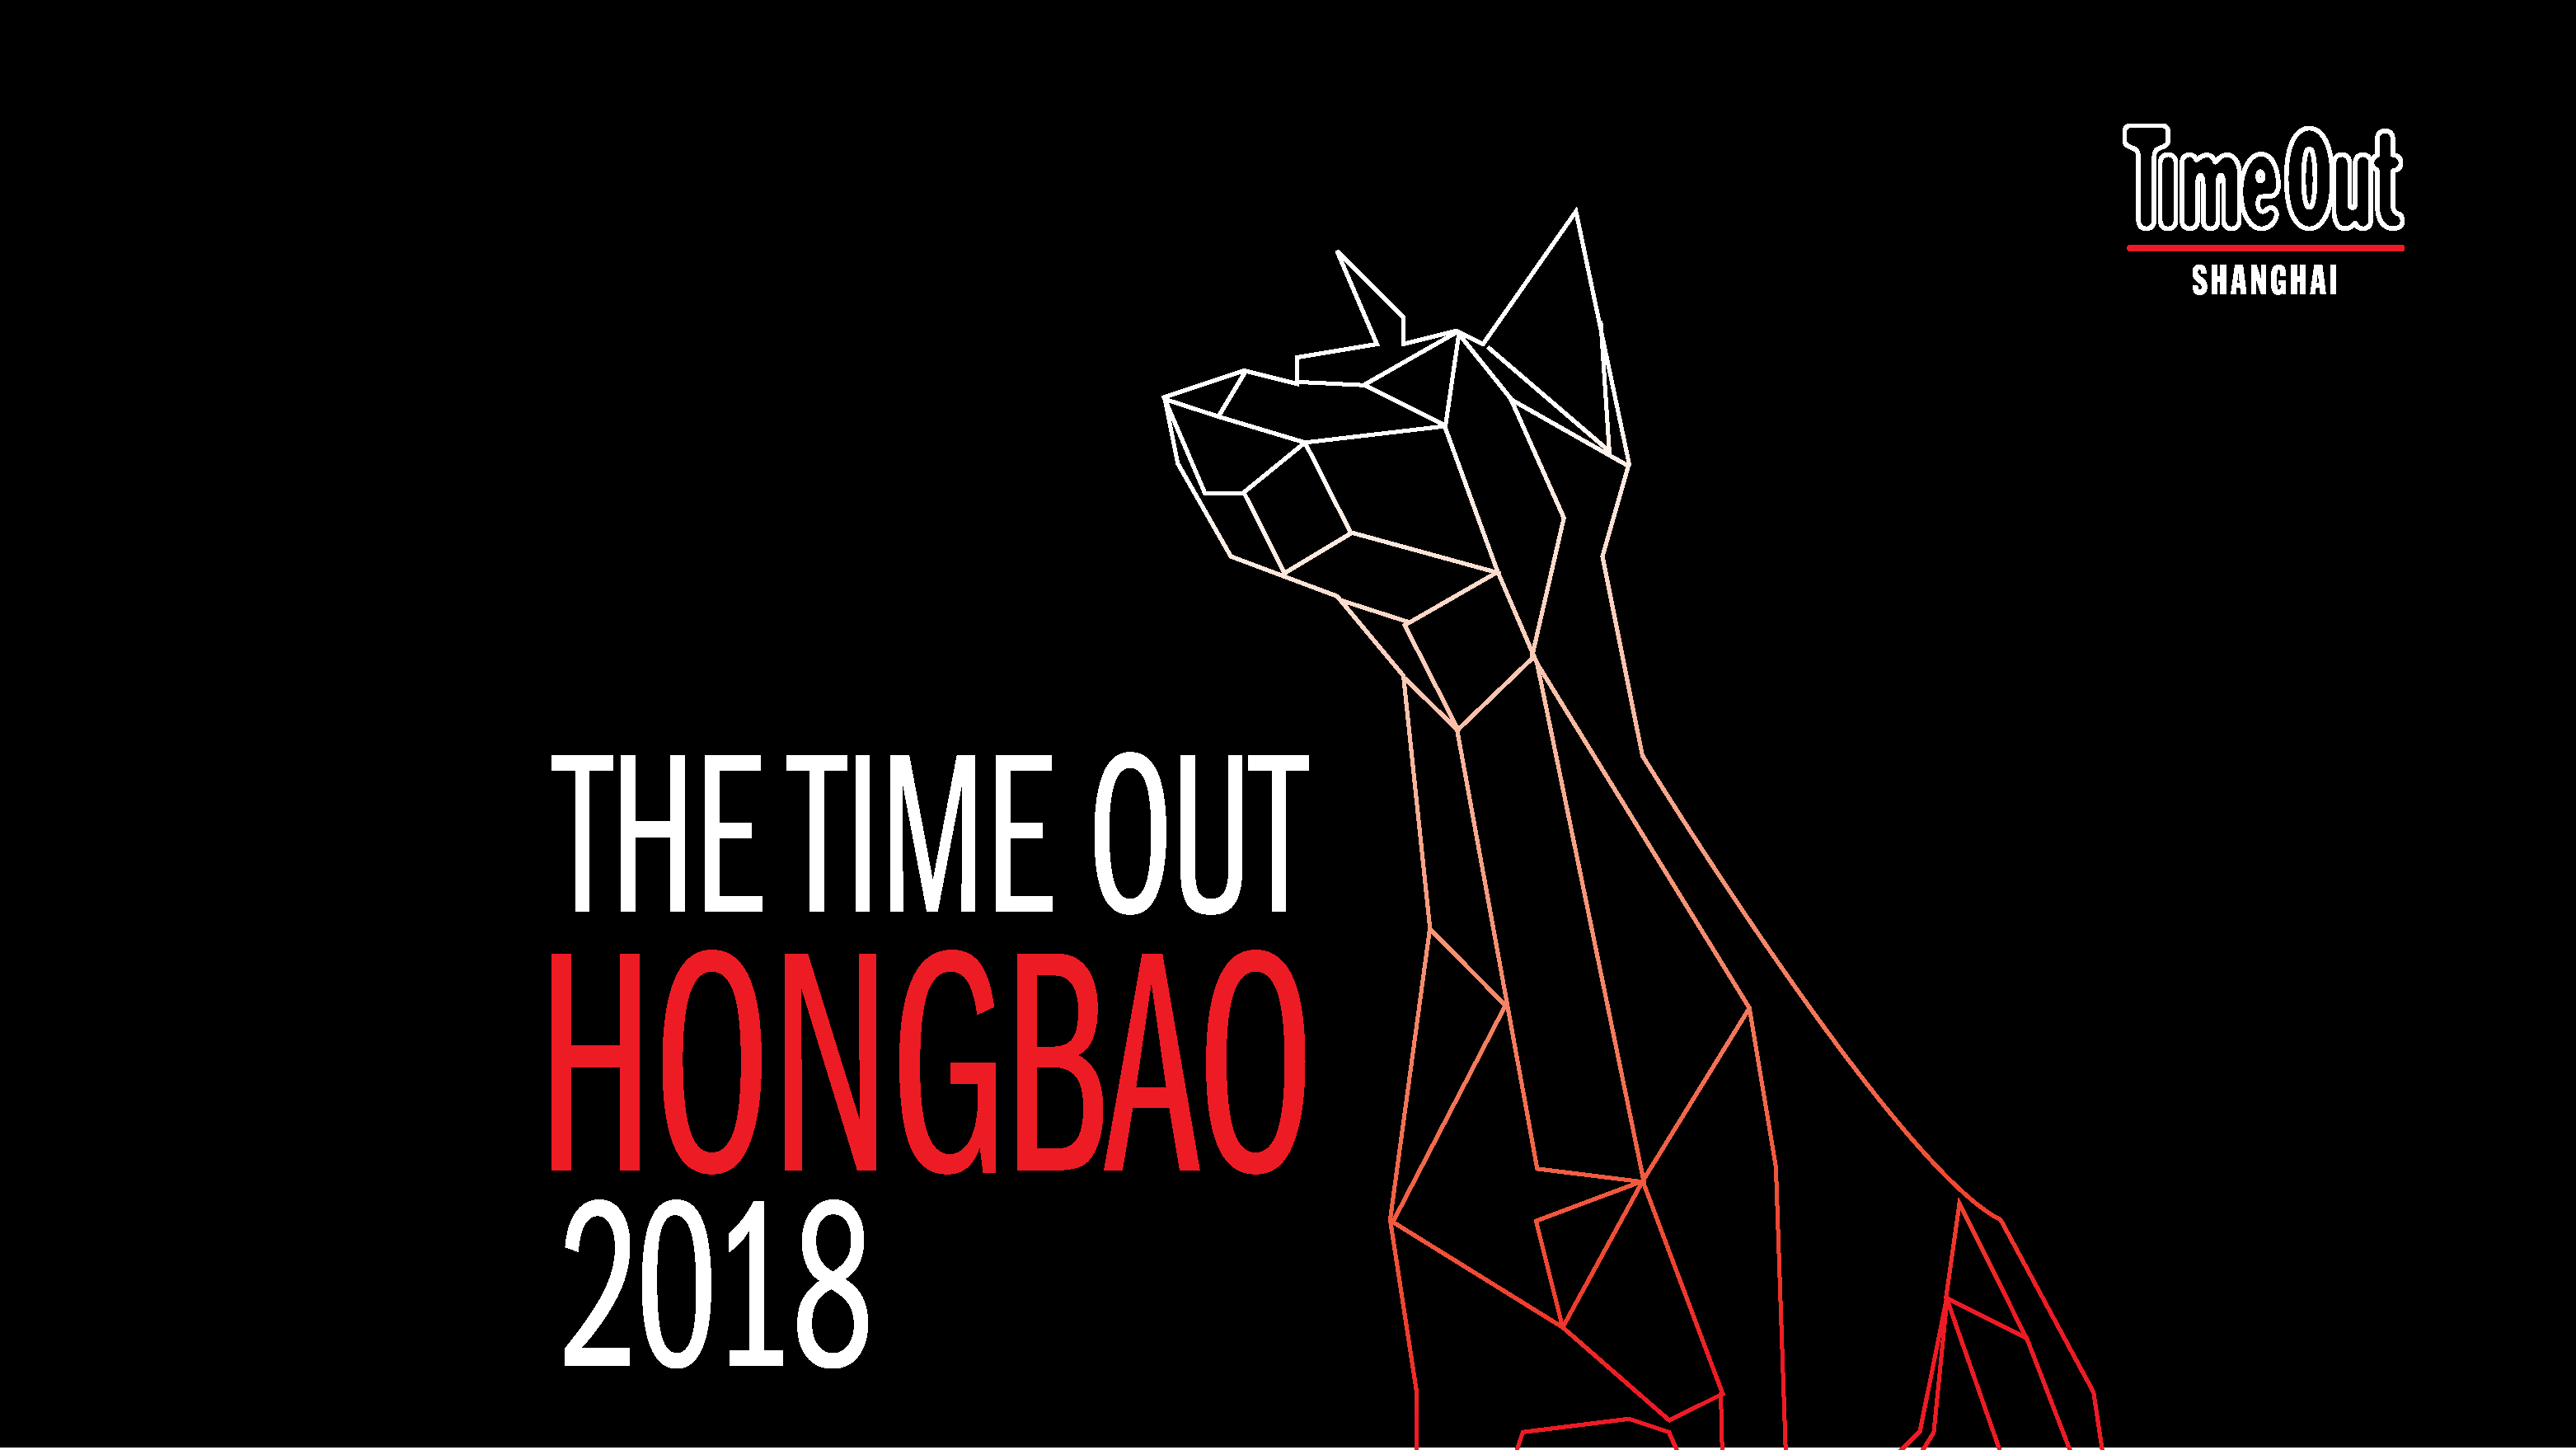 The Time Out Hongbao 2018: win two tickets to John Legend